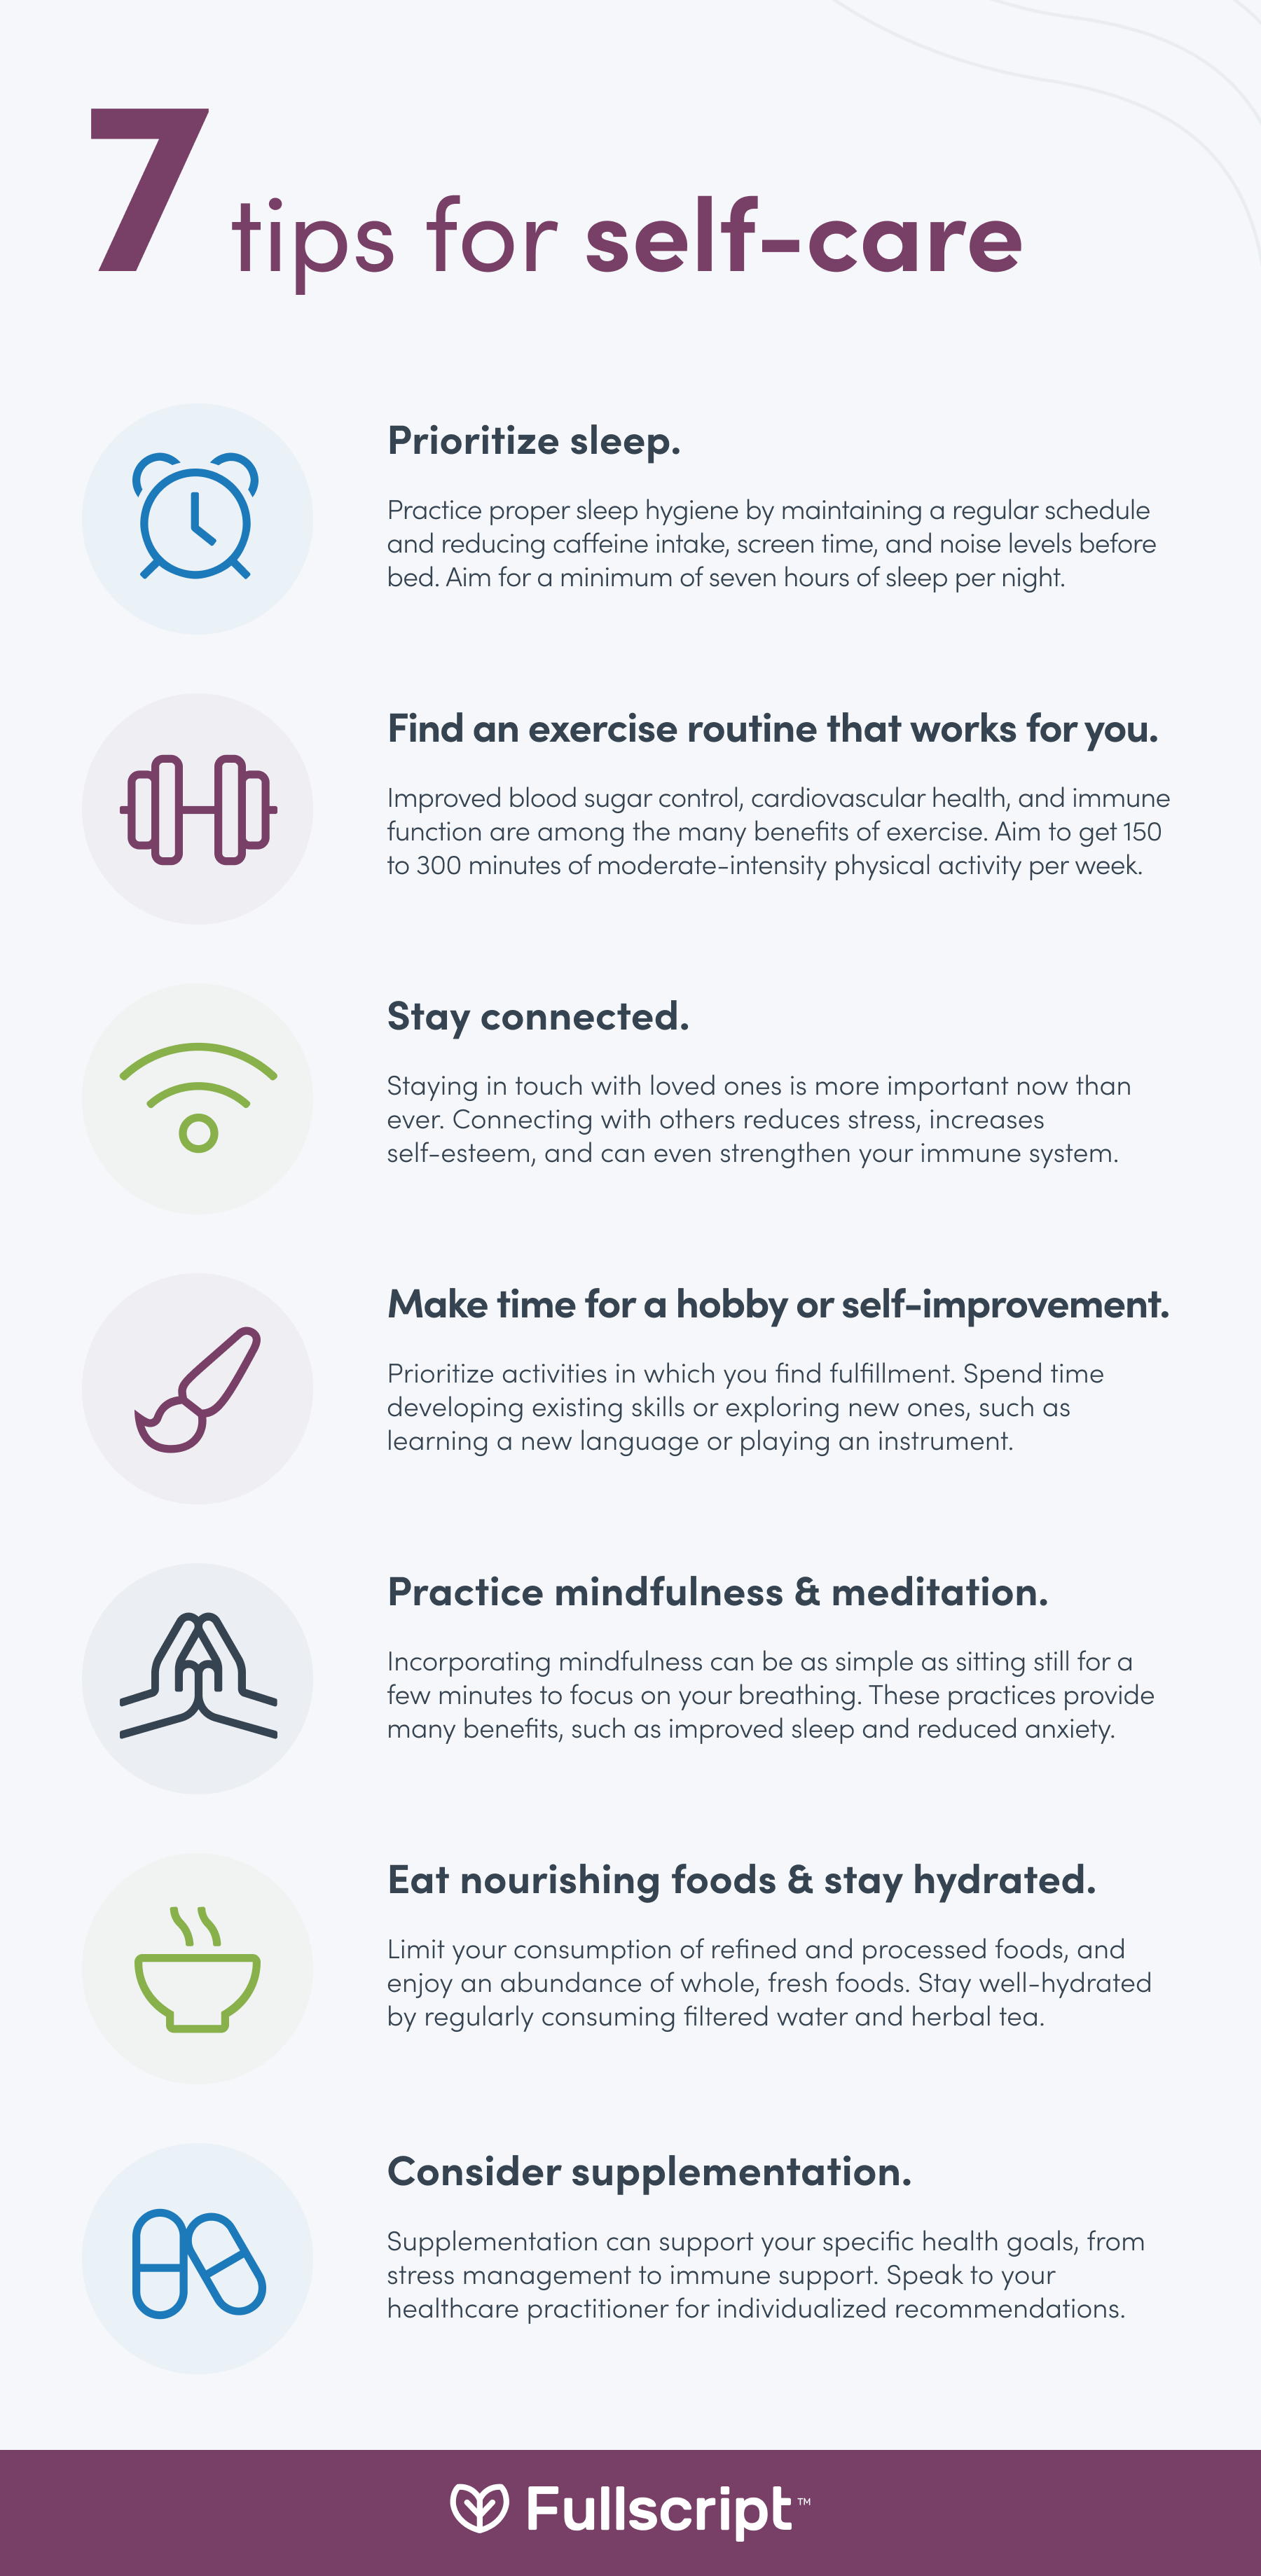 Self-care activities support infographic